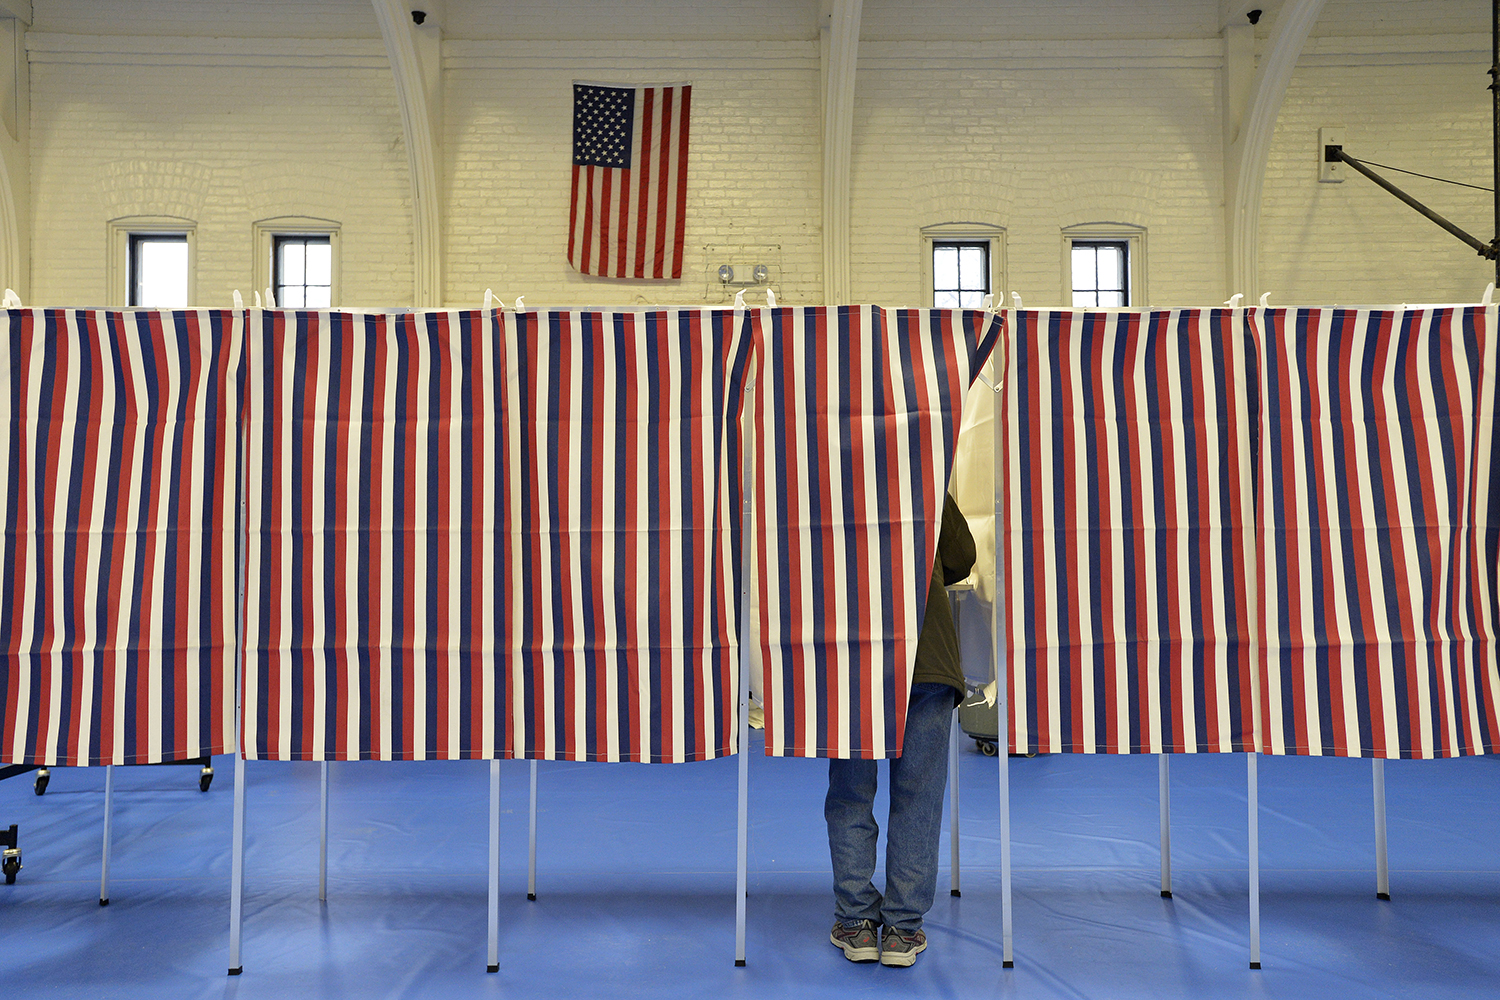 Voting booths fill a community center during the New Hampshire primary in Concord on Feb. 11. JOSEPH PREZIOSO/AFP via Getty Images